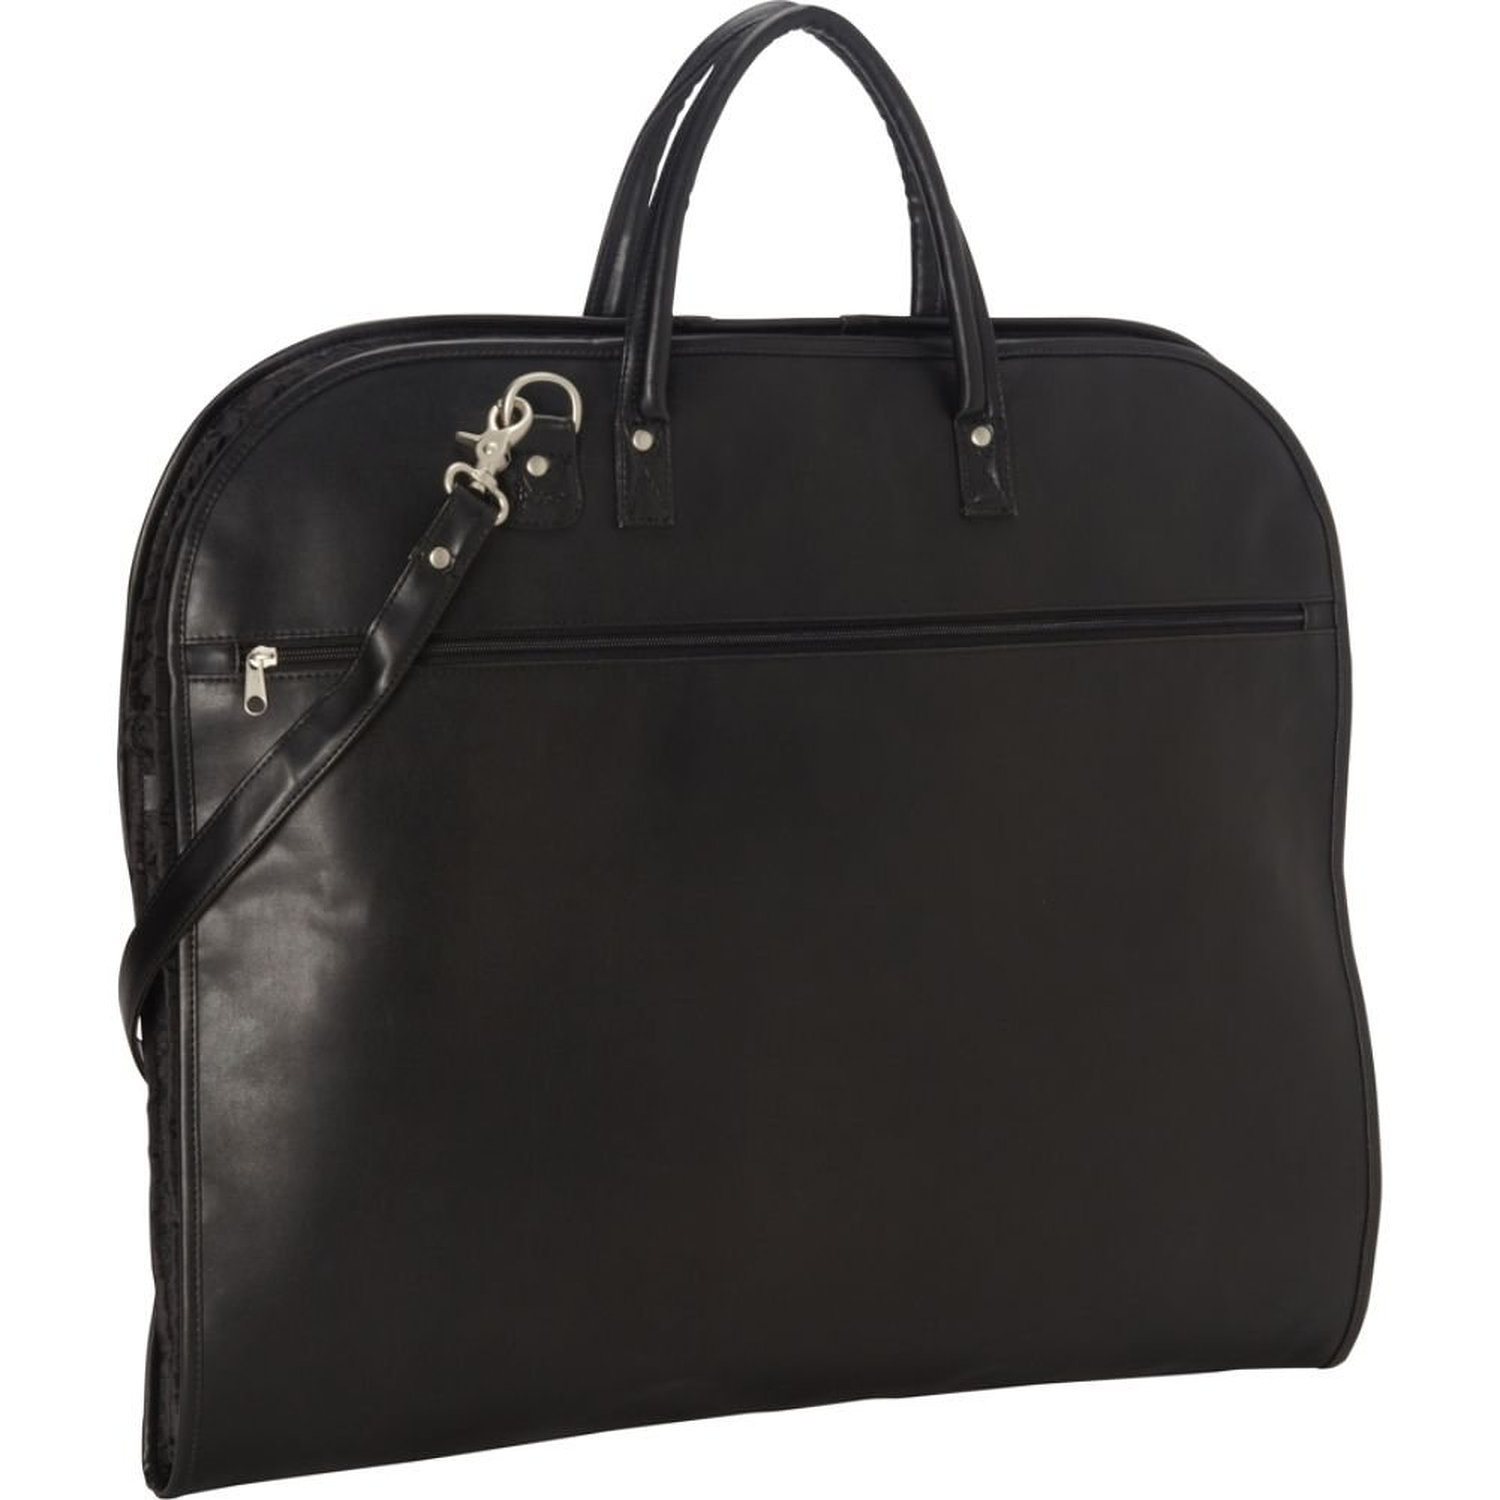 Royce Leather Garment Bag Suitcase in Leather, Black by Royce Leather